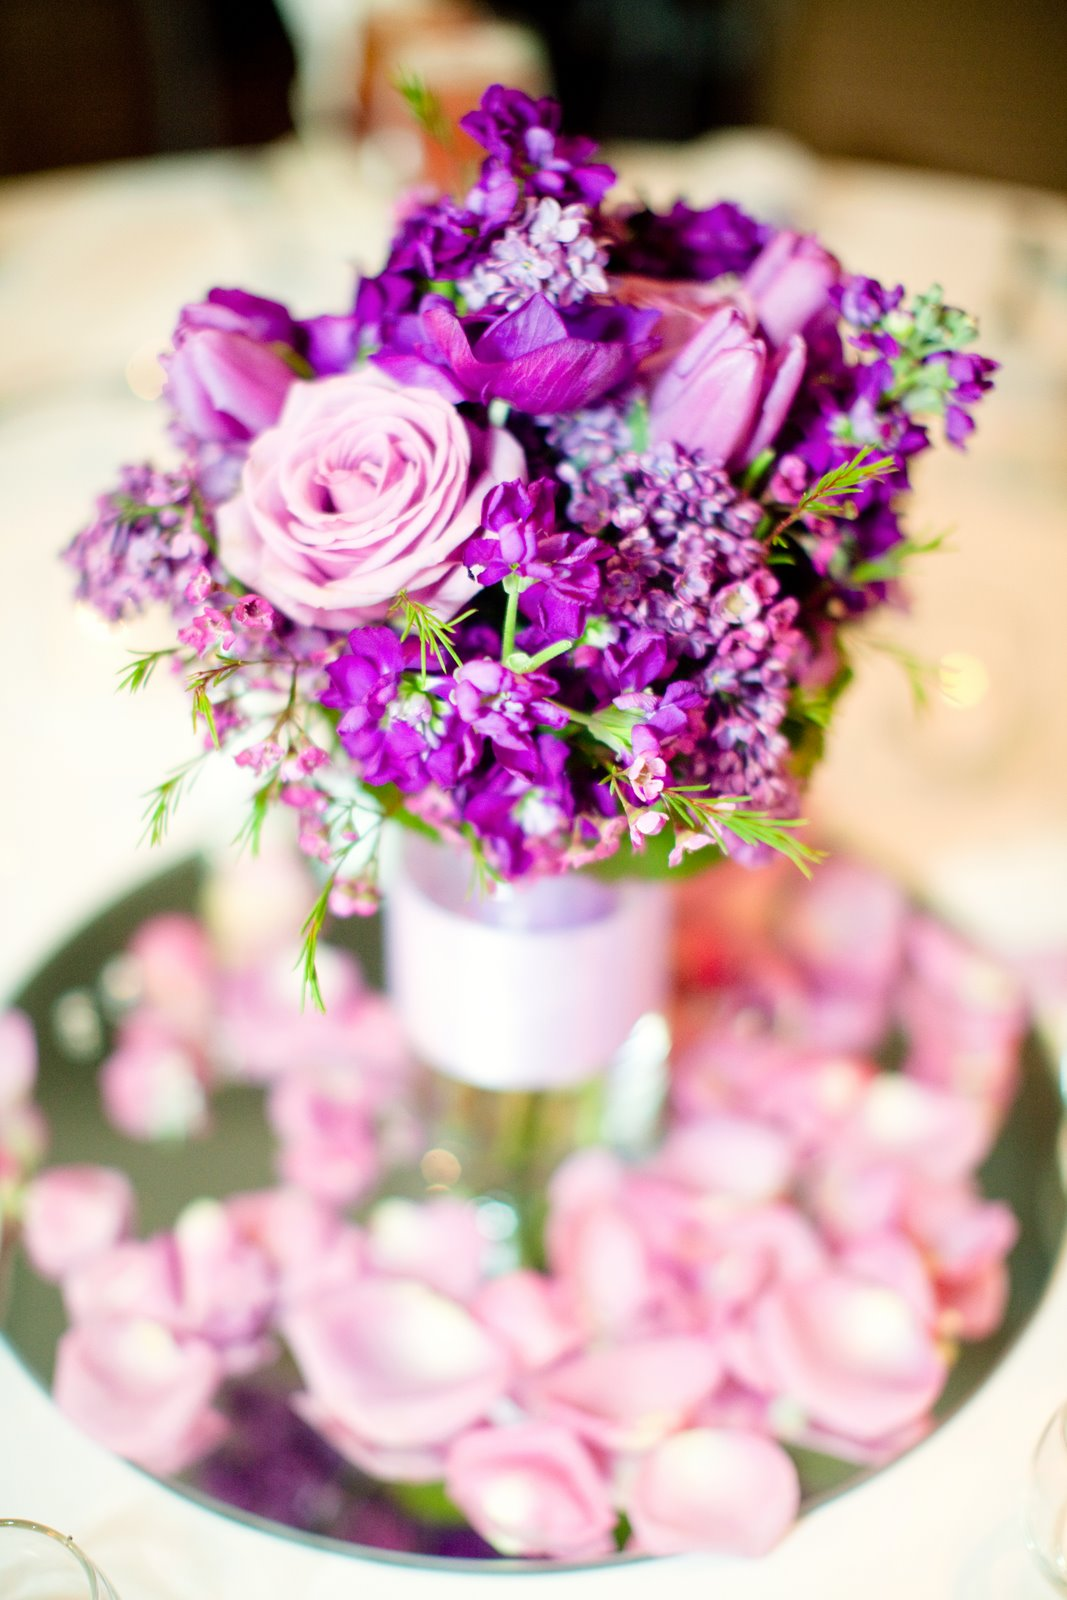 5 Incredible Flower Arrangements For a Last-Minute Dining Room Decor 5